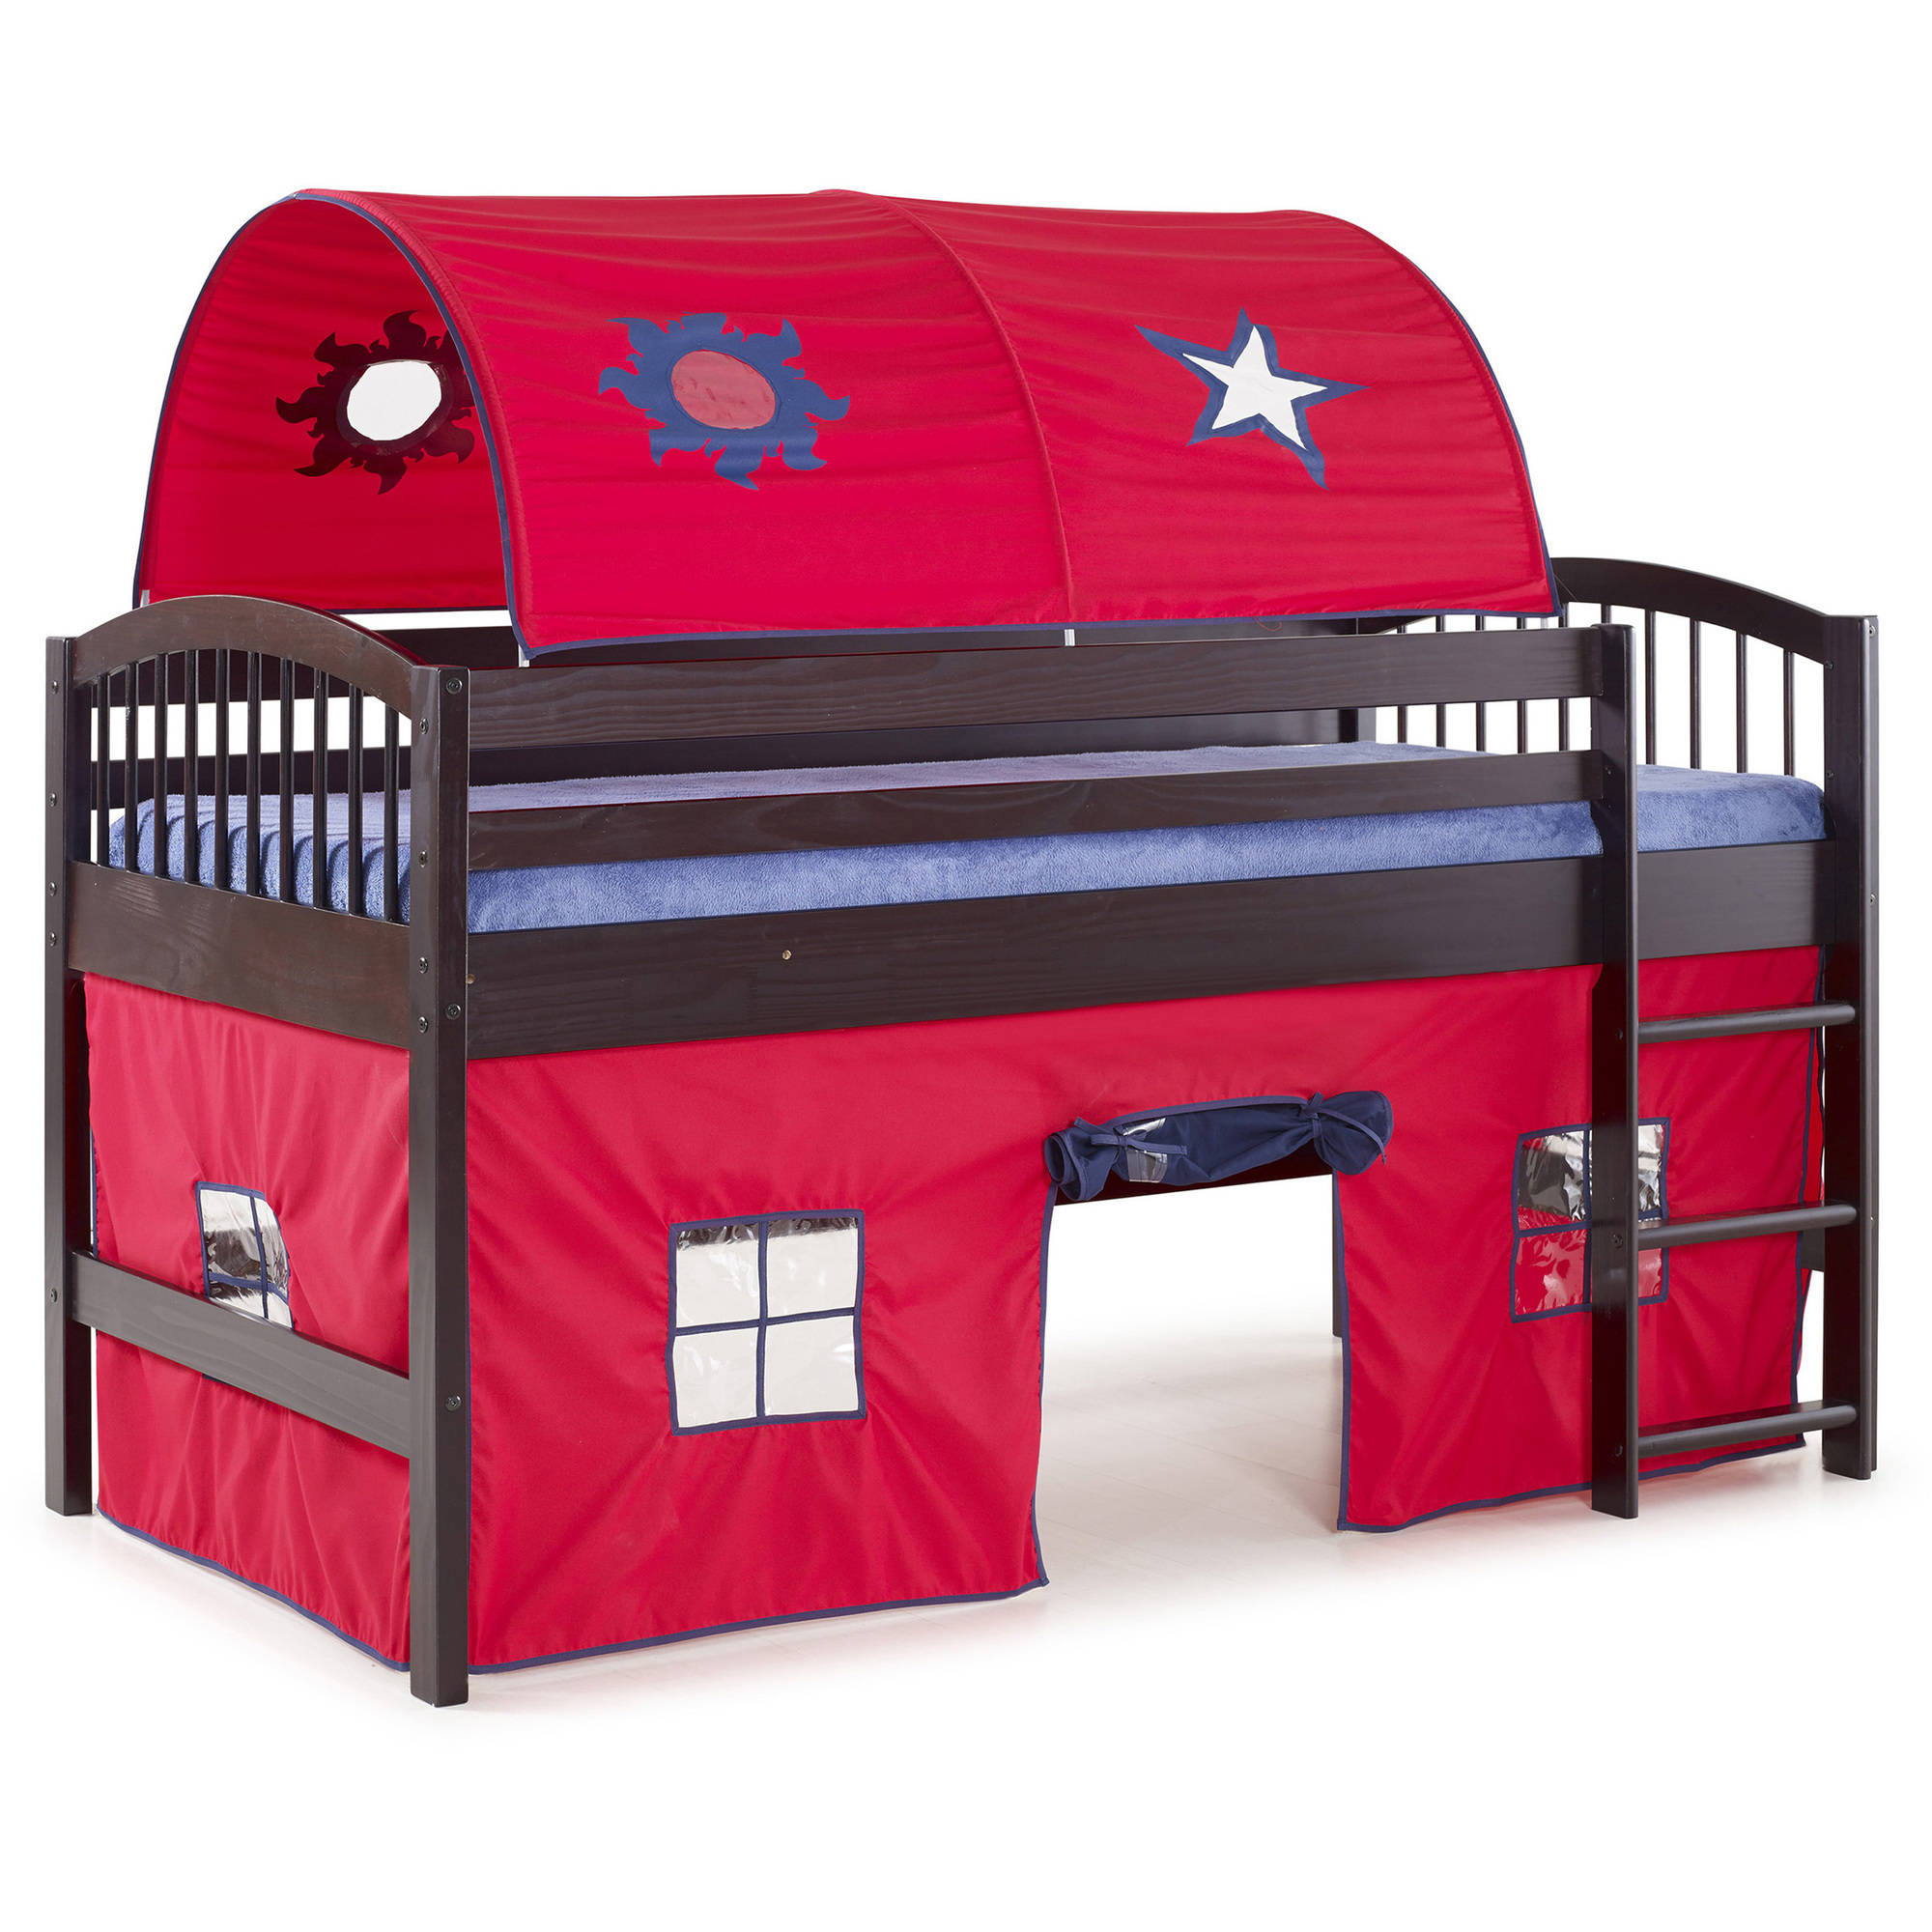 Addison Espresso Finish Junior Loft Bed, Red Tent and Playhouse with Blue Trim by Alaterre